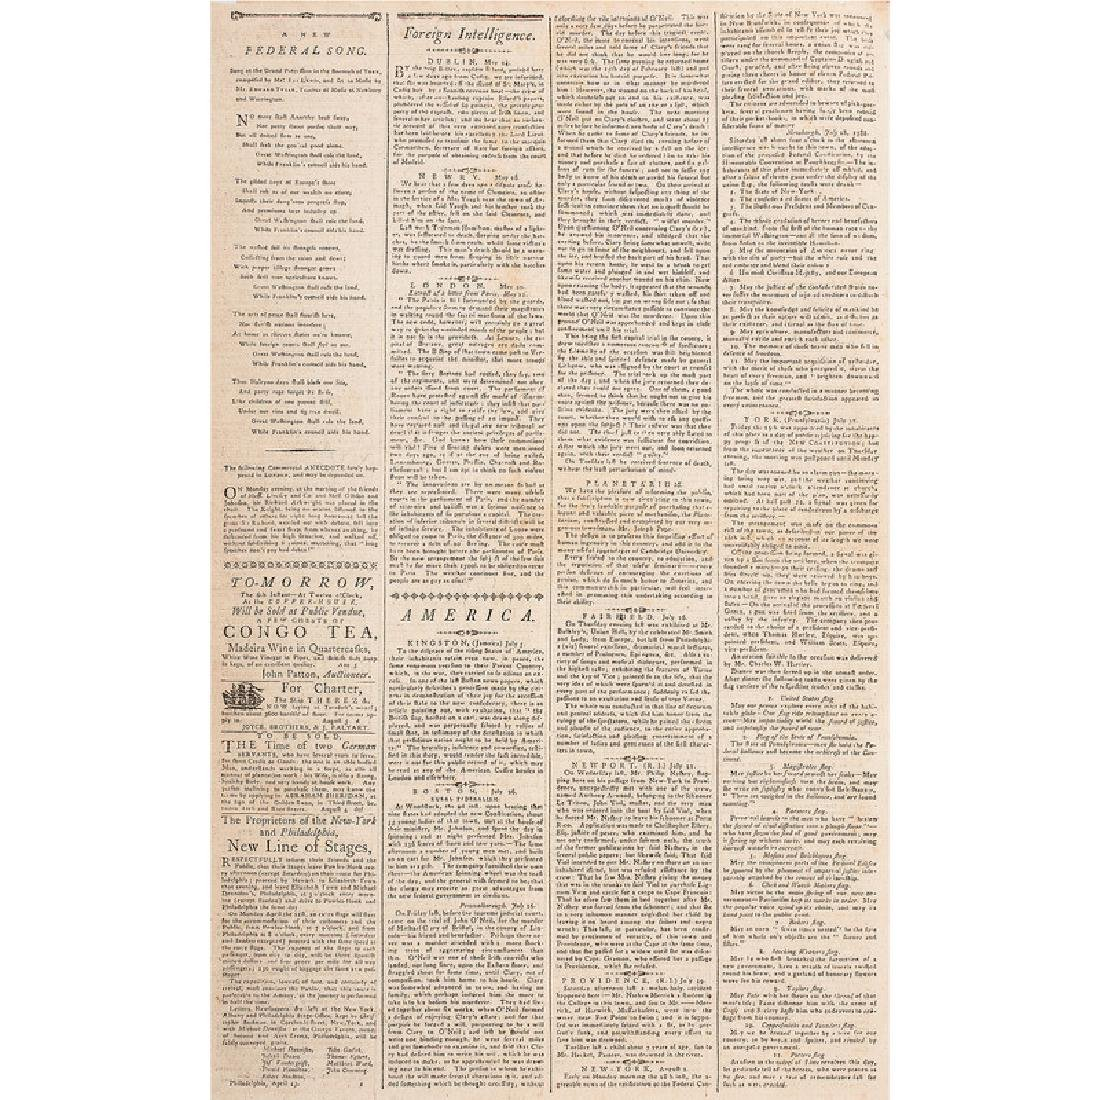 Ratification of the US Constitution Reported in The